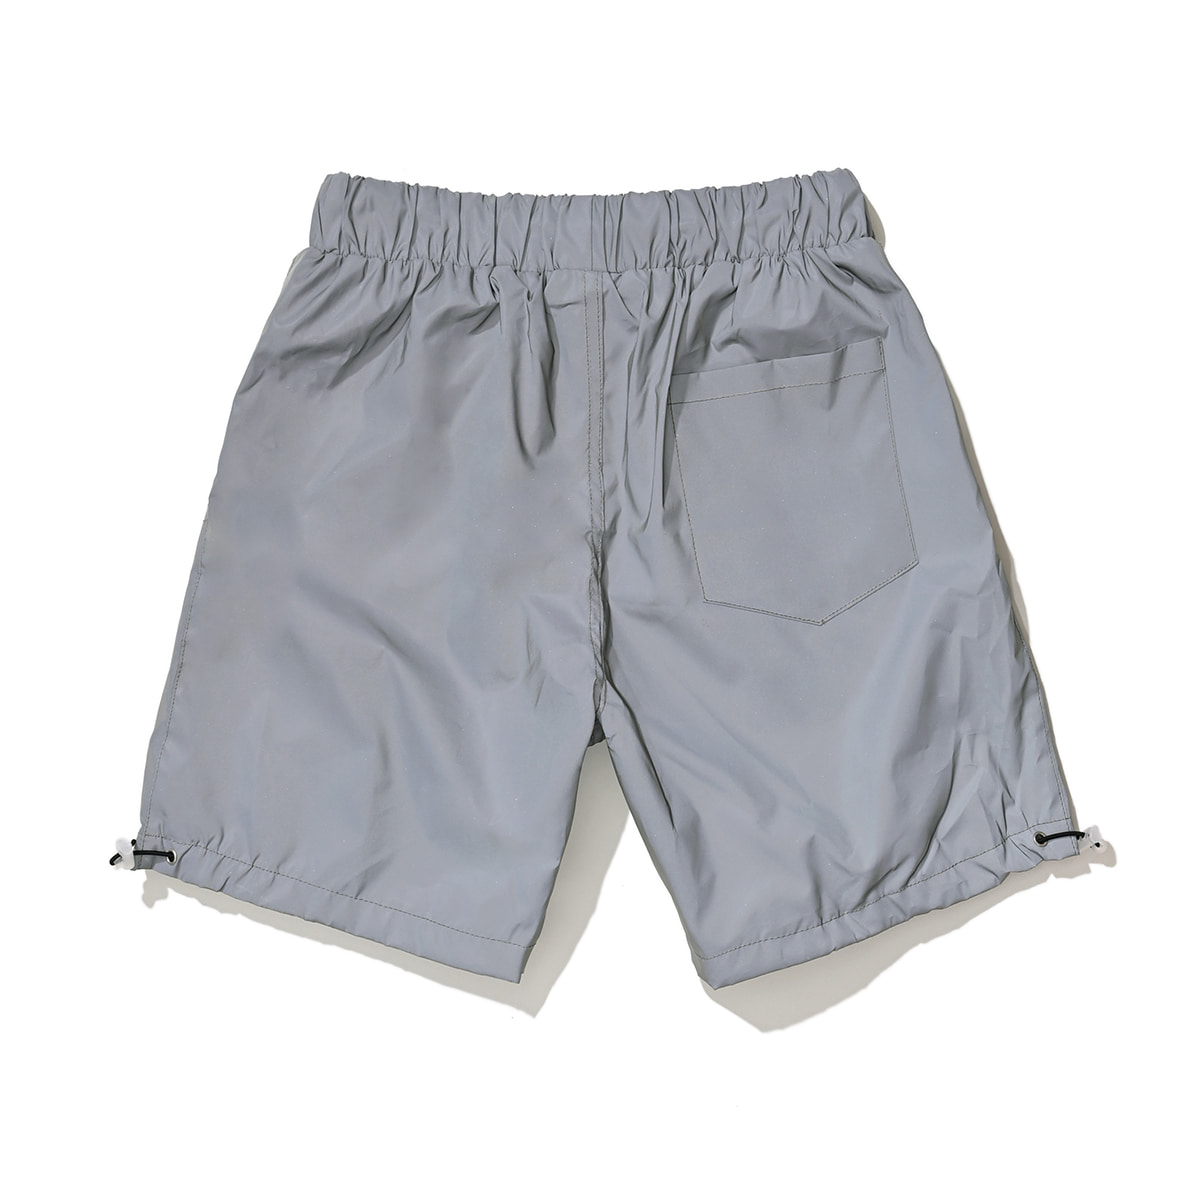 3M Reflective String Shorts (gray)